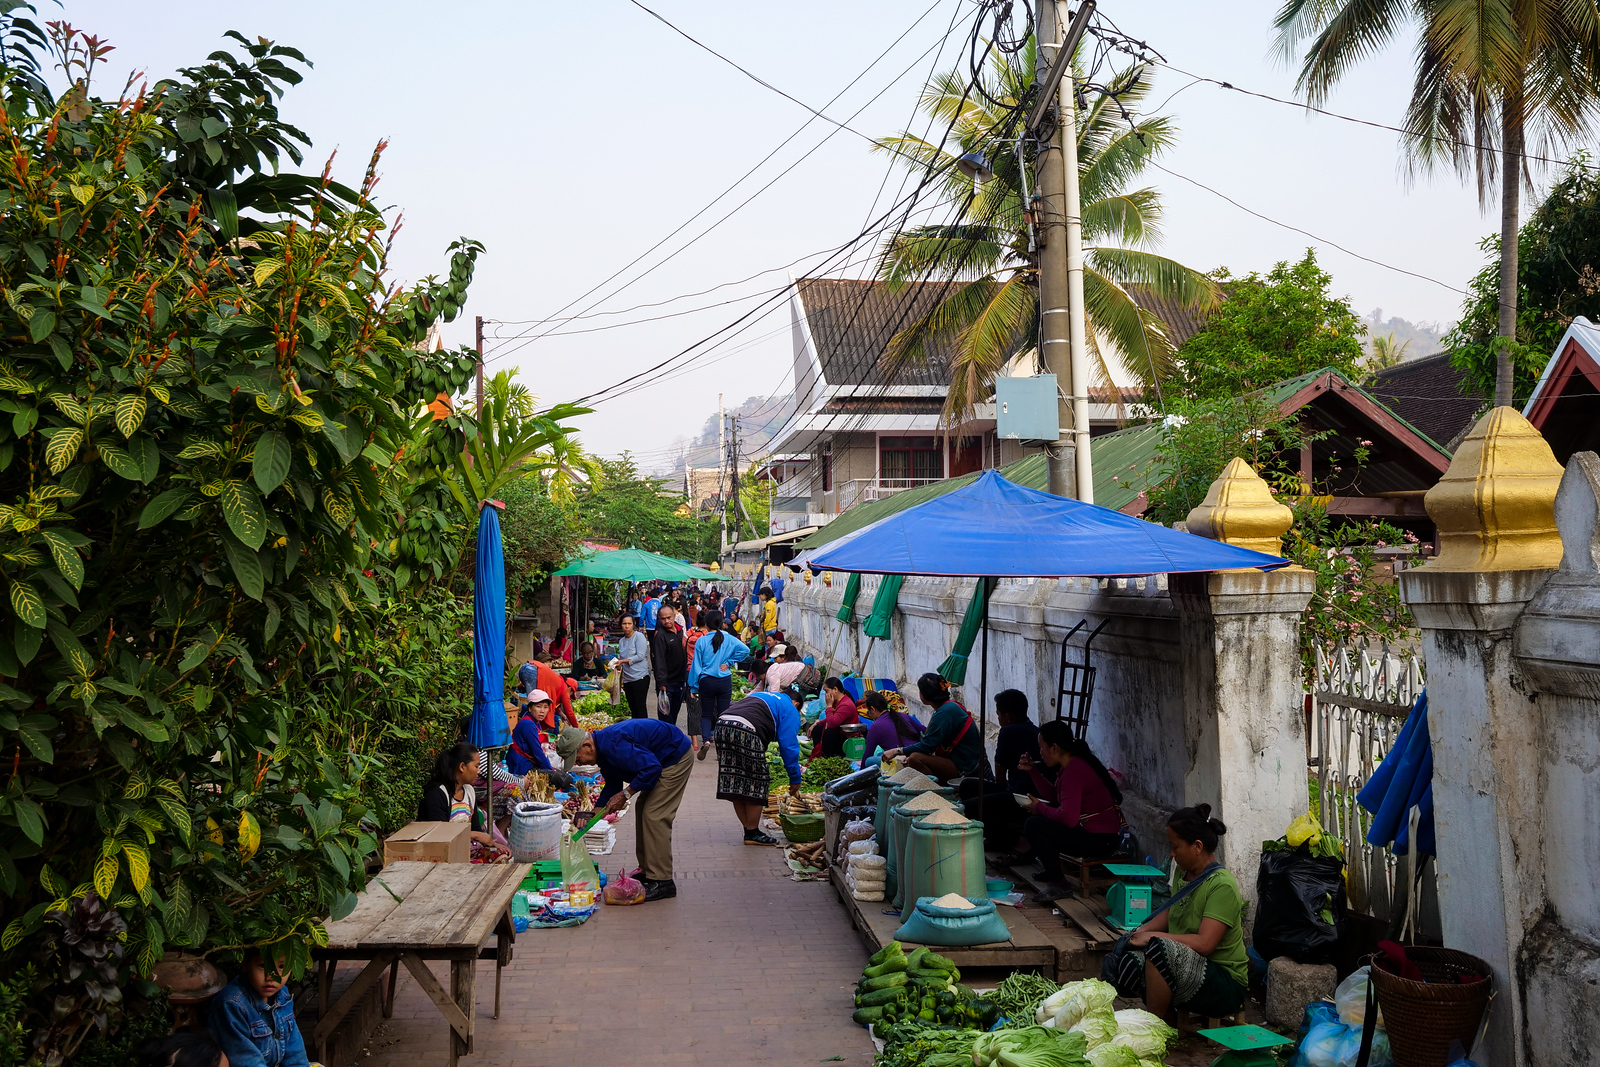 Luang Prabang morning market location